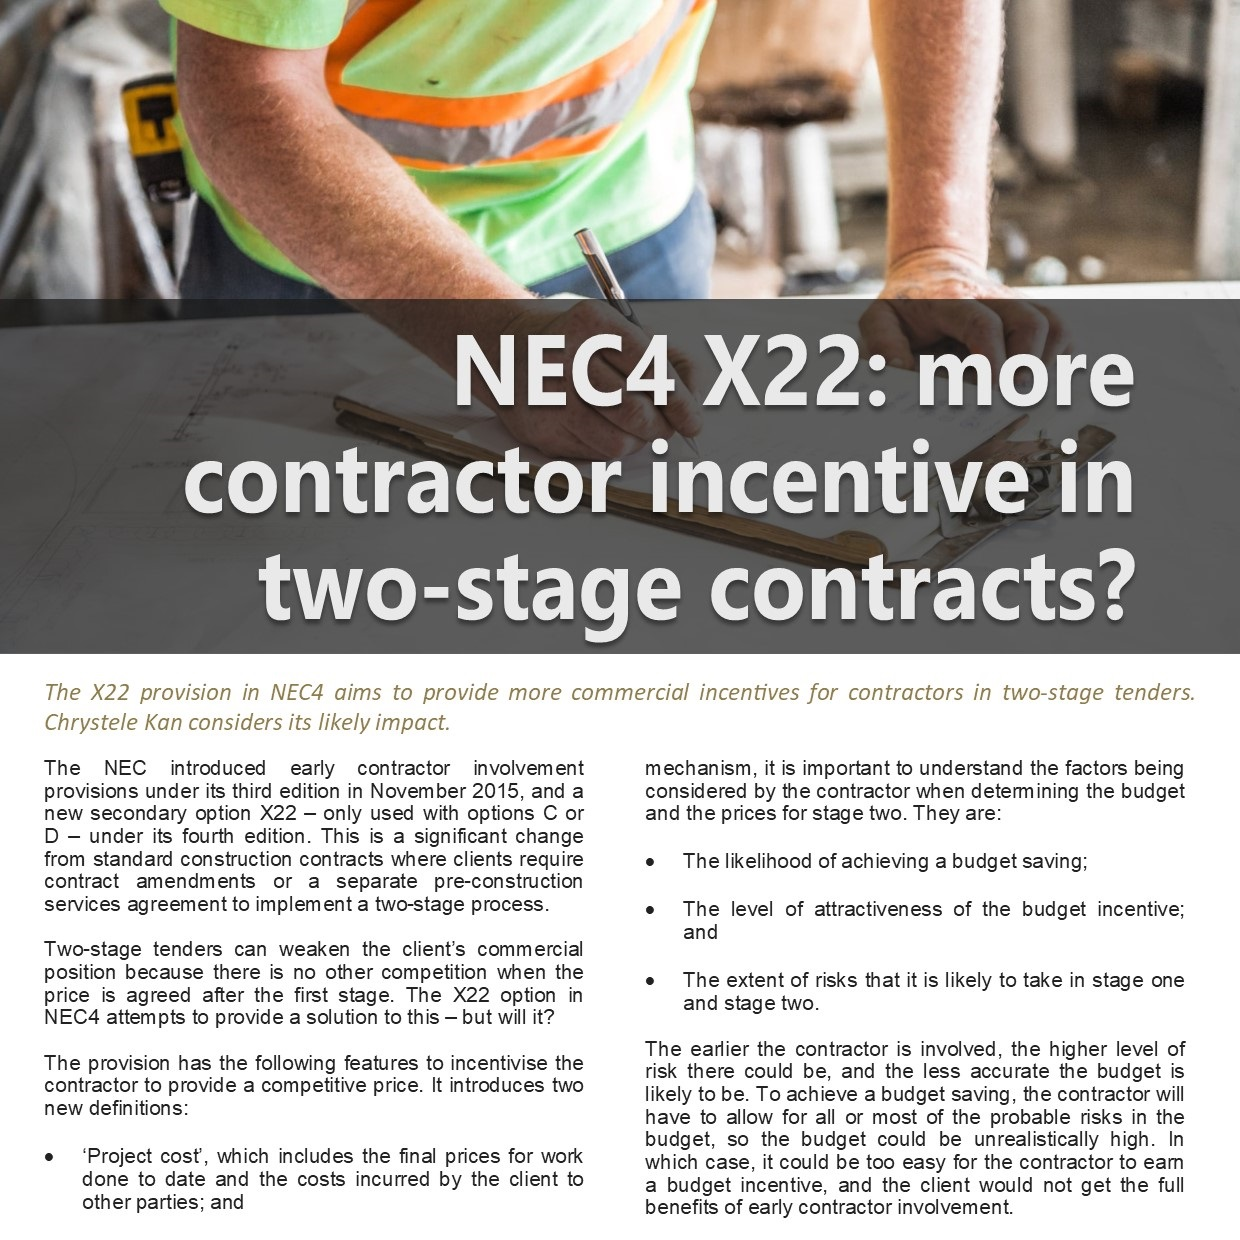 NEC4 X22: Contractor Incentive in Two Stage Contracts Article PDF